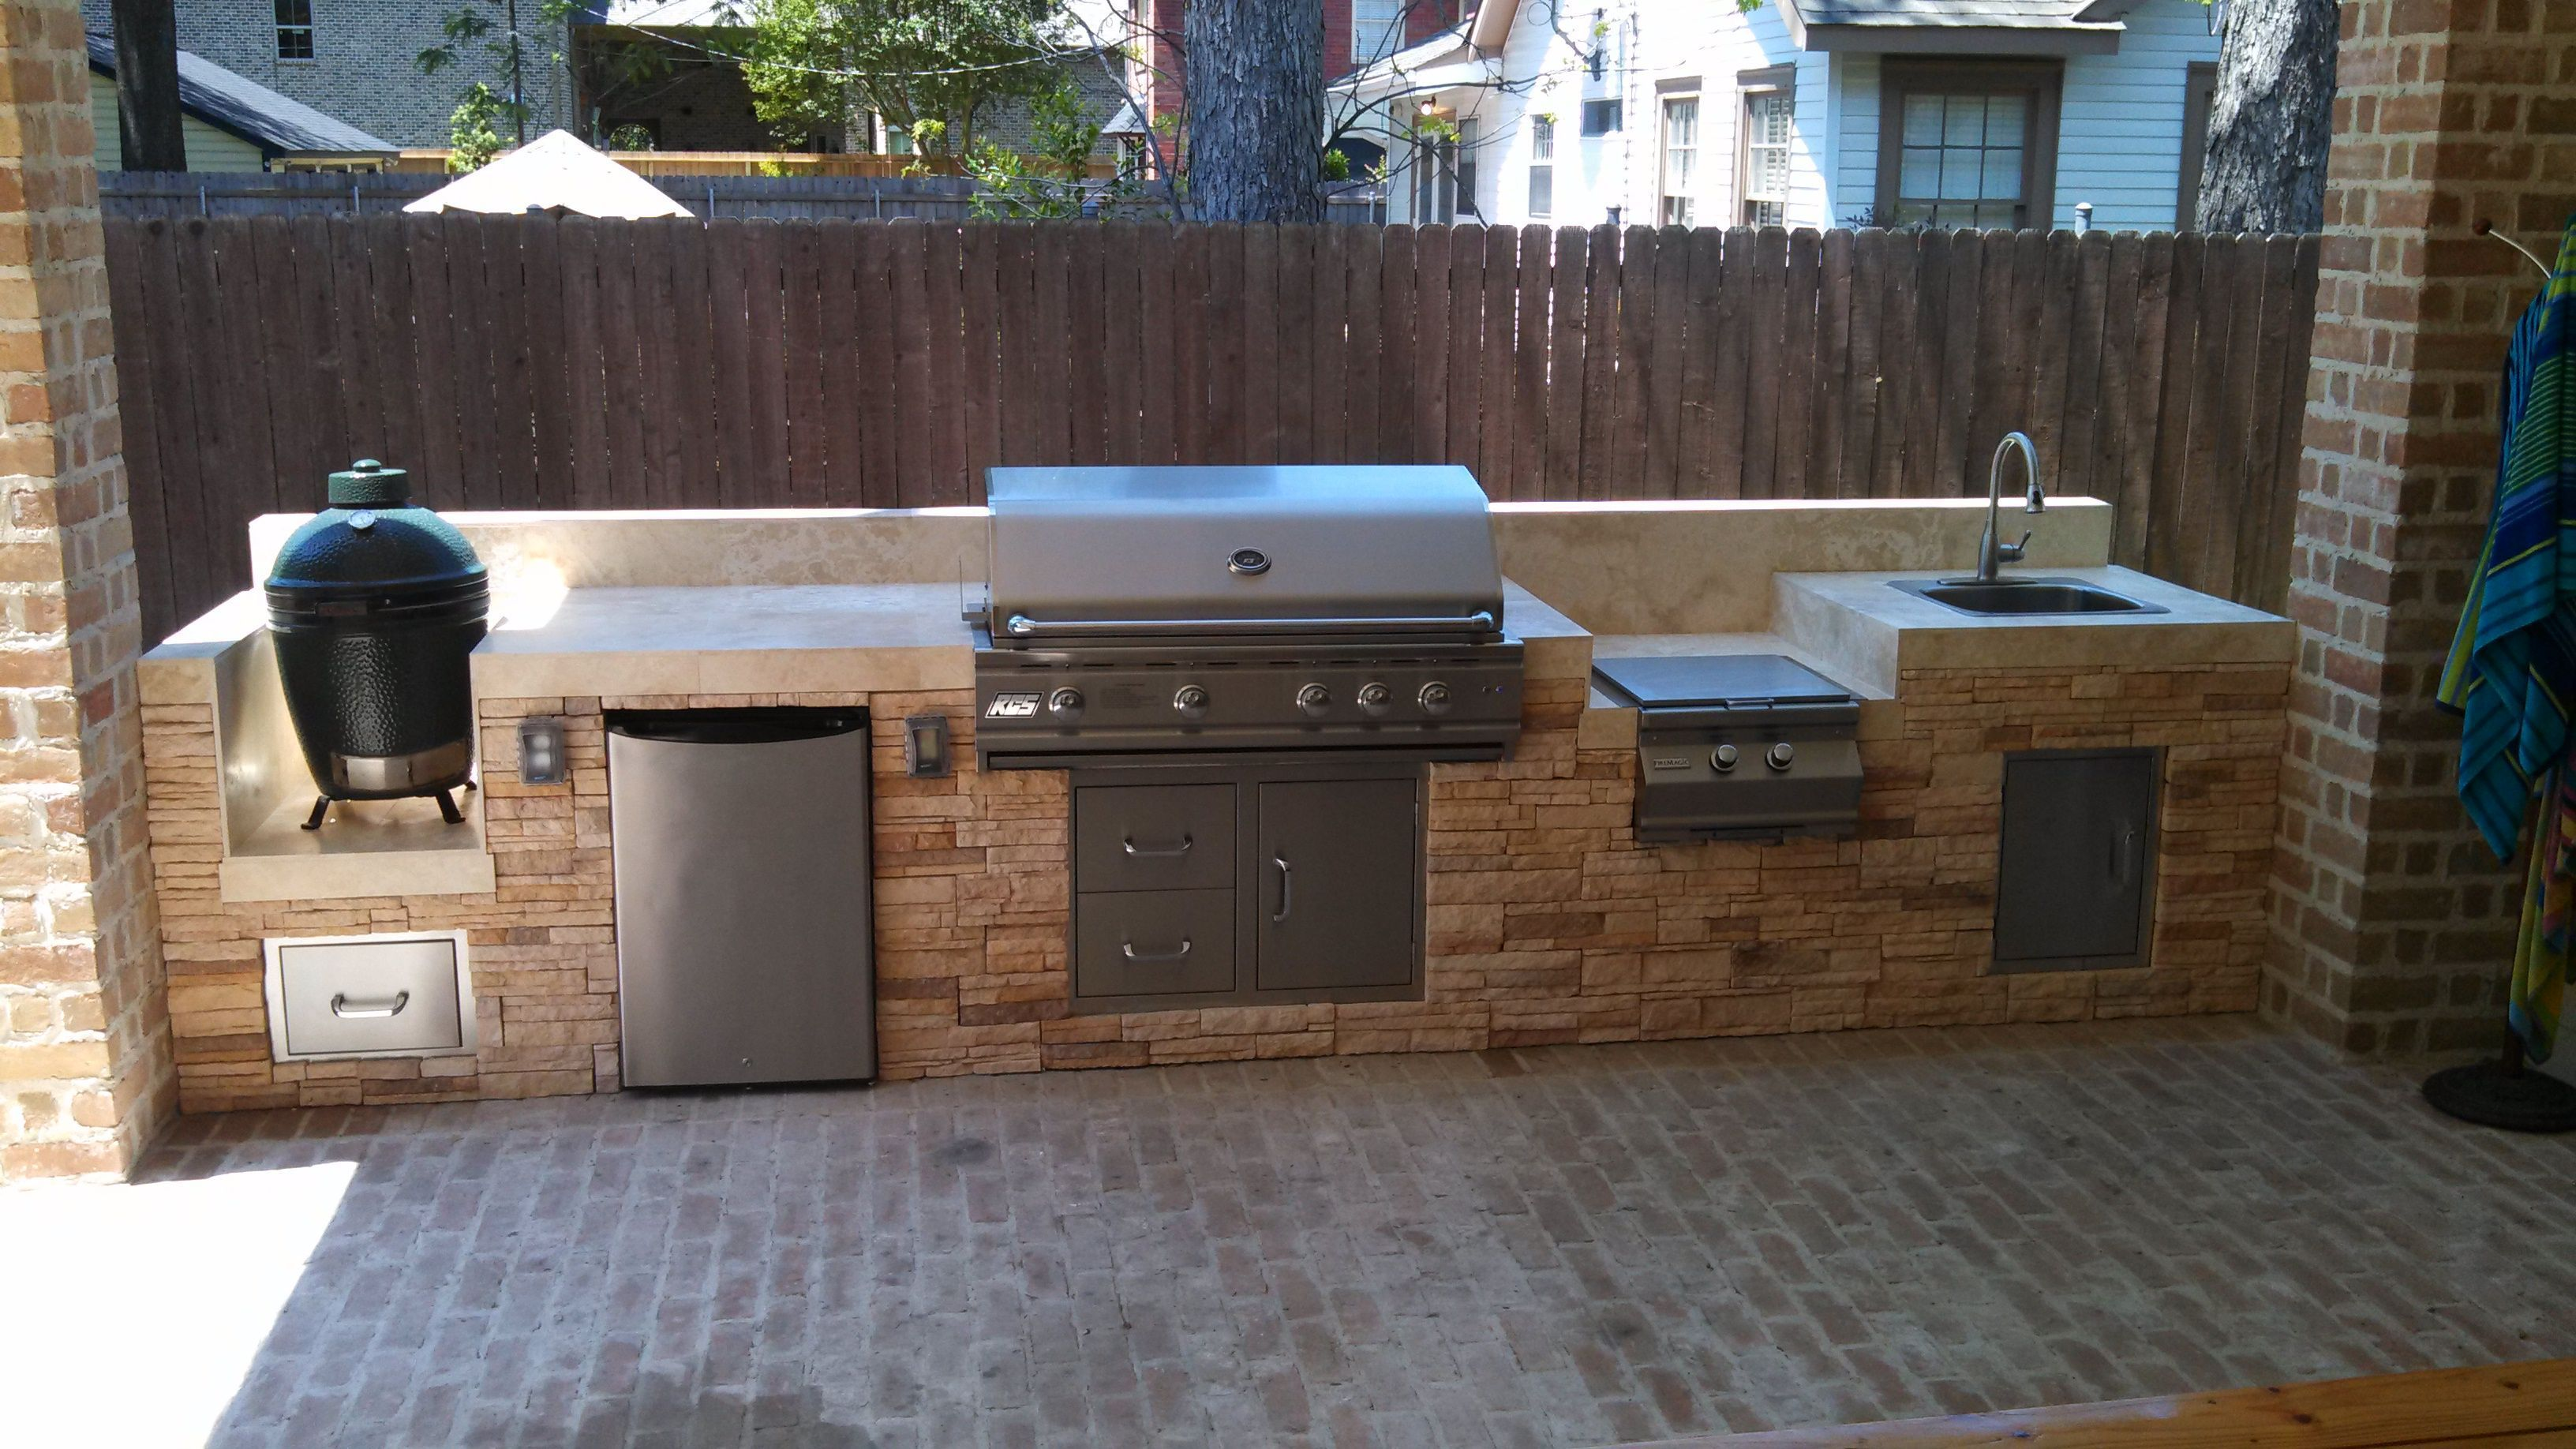 Big Green Egg Grill Giveaway One Week Left Large Big Green Egg Grill Free When Outdoor Homesc Outdoor Refrigerator Outdoor Kitchen Decor Outdoor Cooking Area